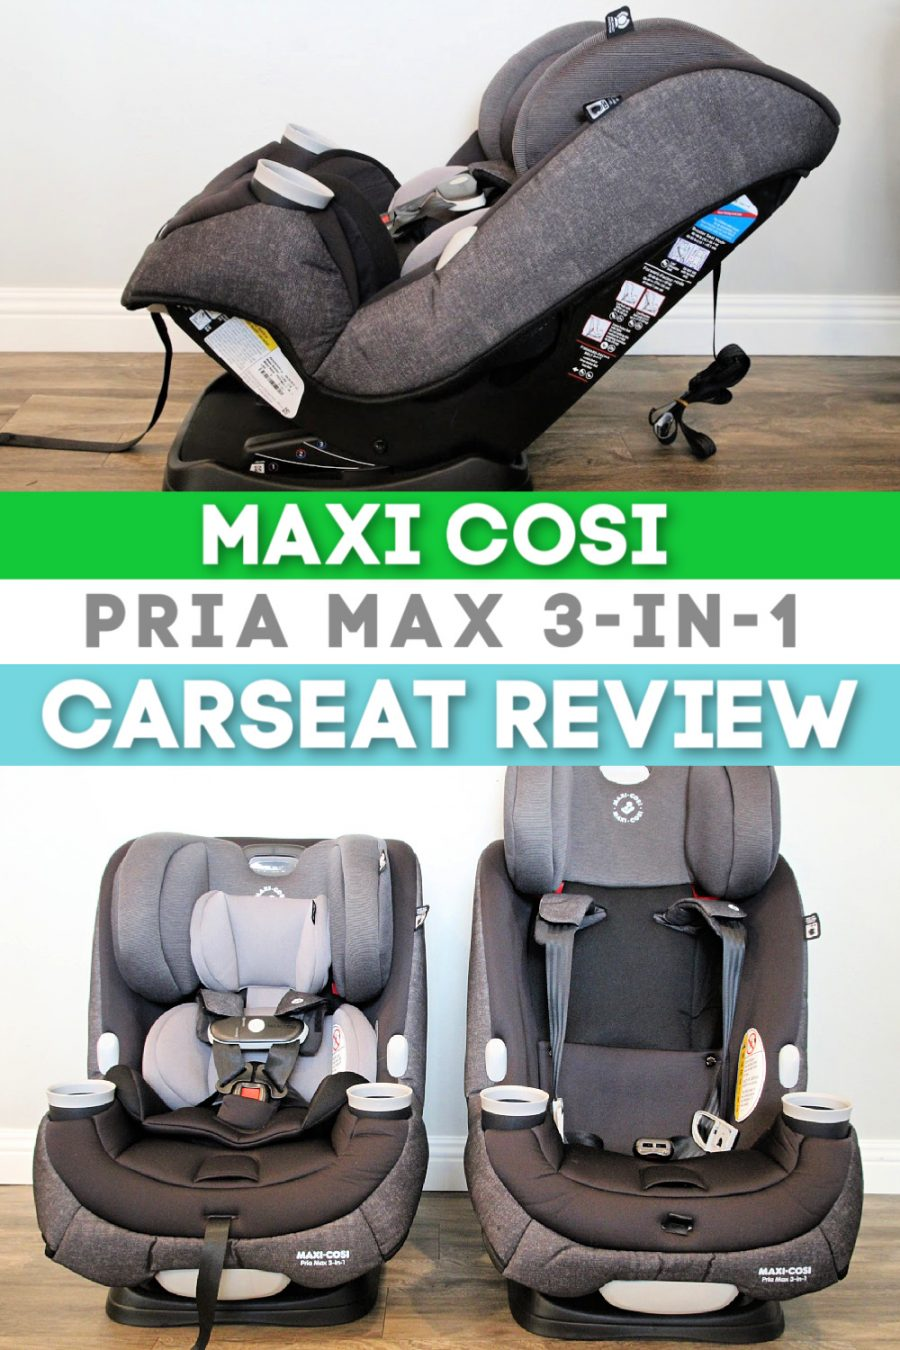 Common Carseat Mistakes That May Be Putting Your Child In Danger! {+ Maxi Cosi Pria Max 3 in 1 Review} - Maxi Cosi Pria Max 3 in 1 Review